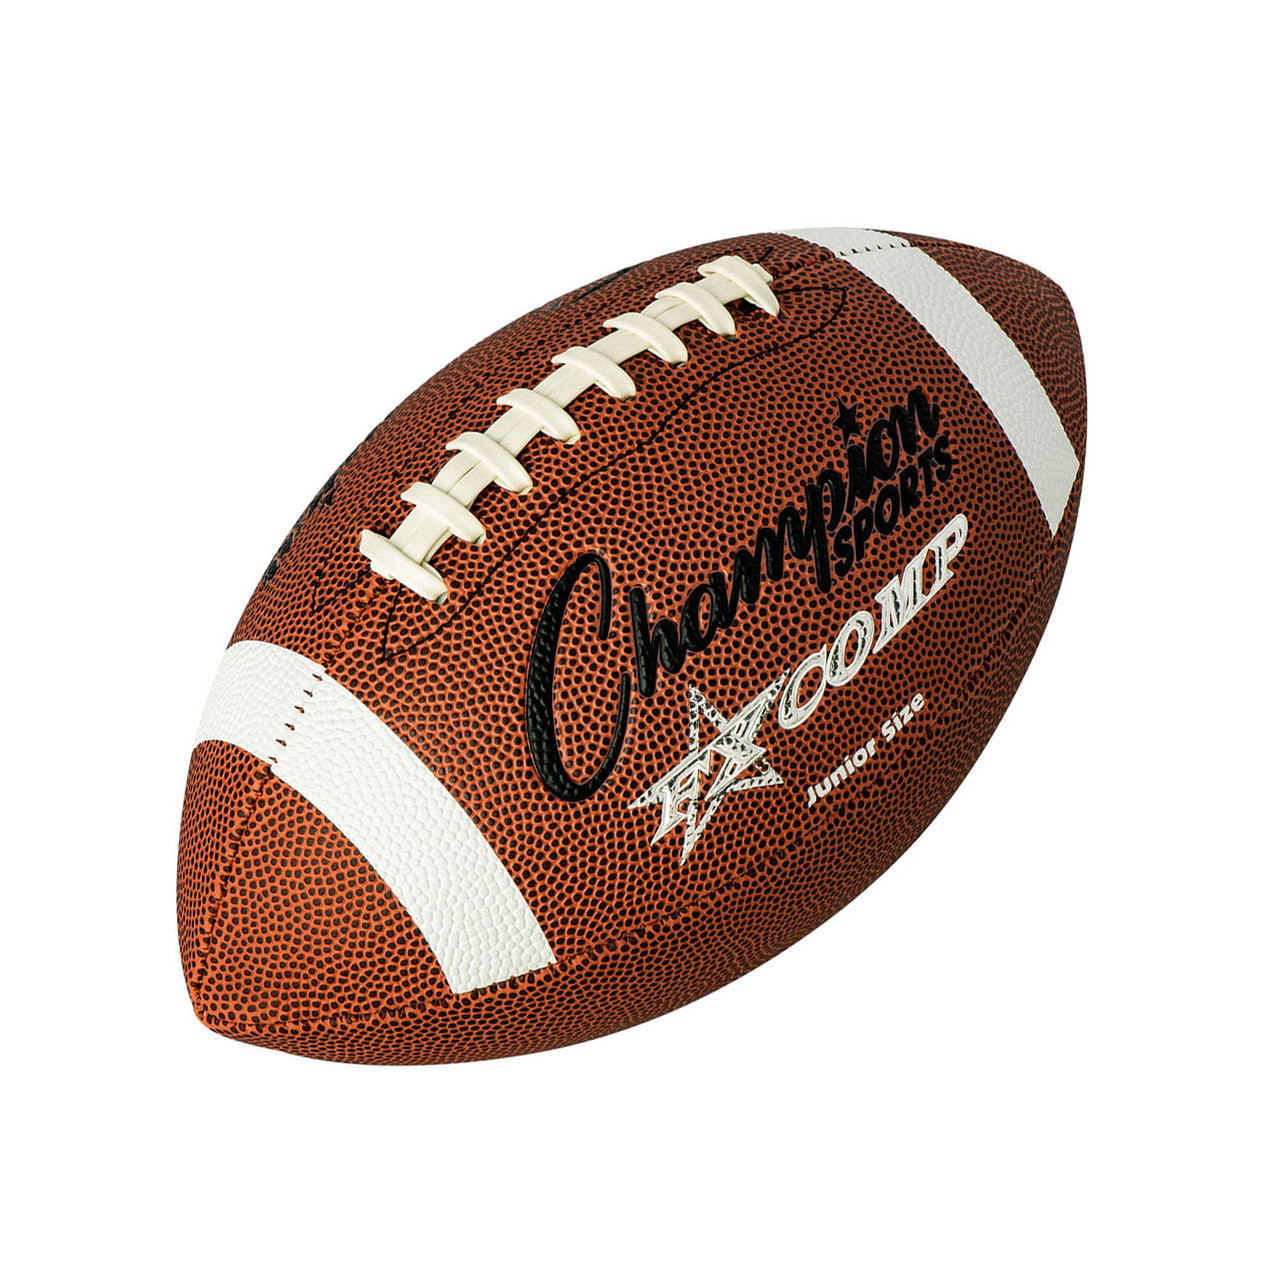 Champion Sports FX Series Composite Football - Junior Size